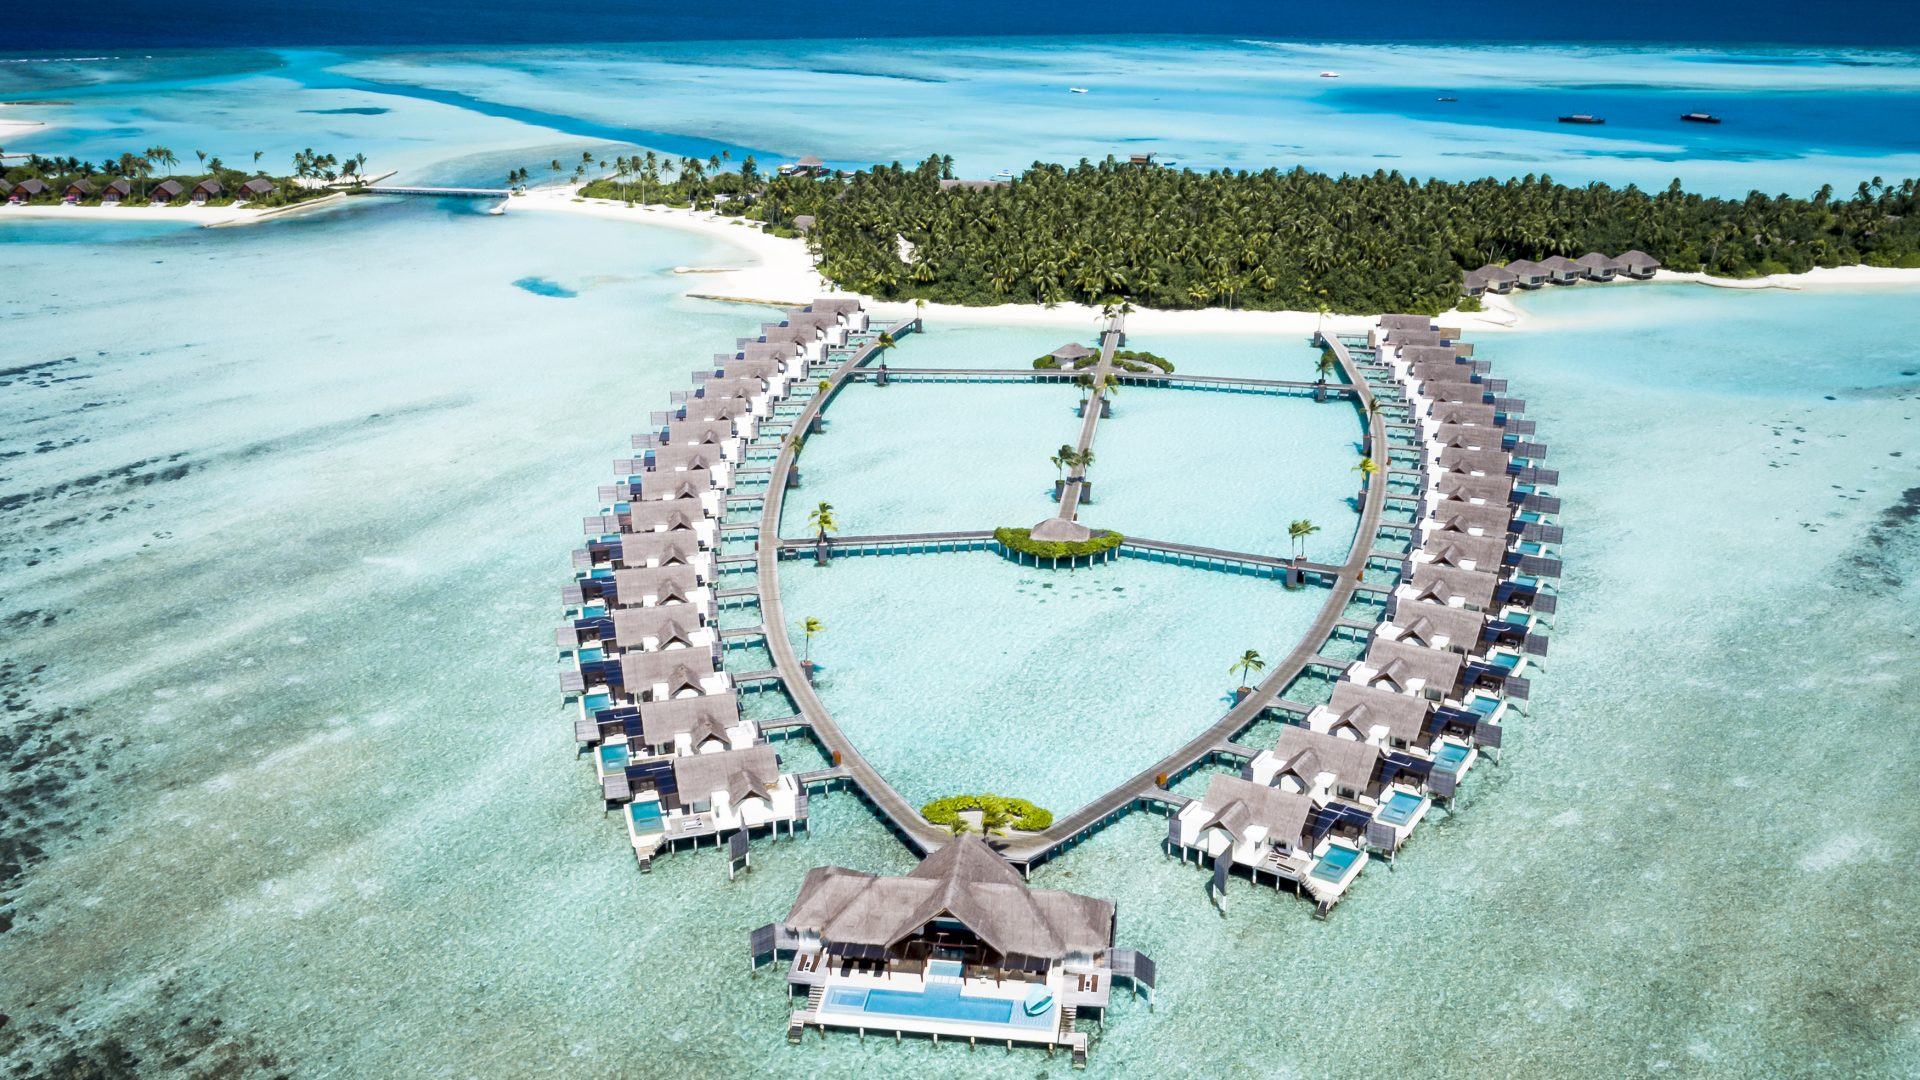 72303771-H1-PNIY_Aerial_Over_Water_Villas_01_G_A_L